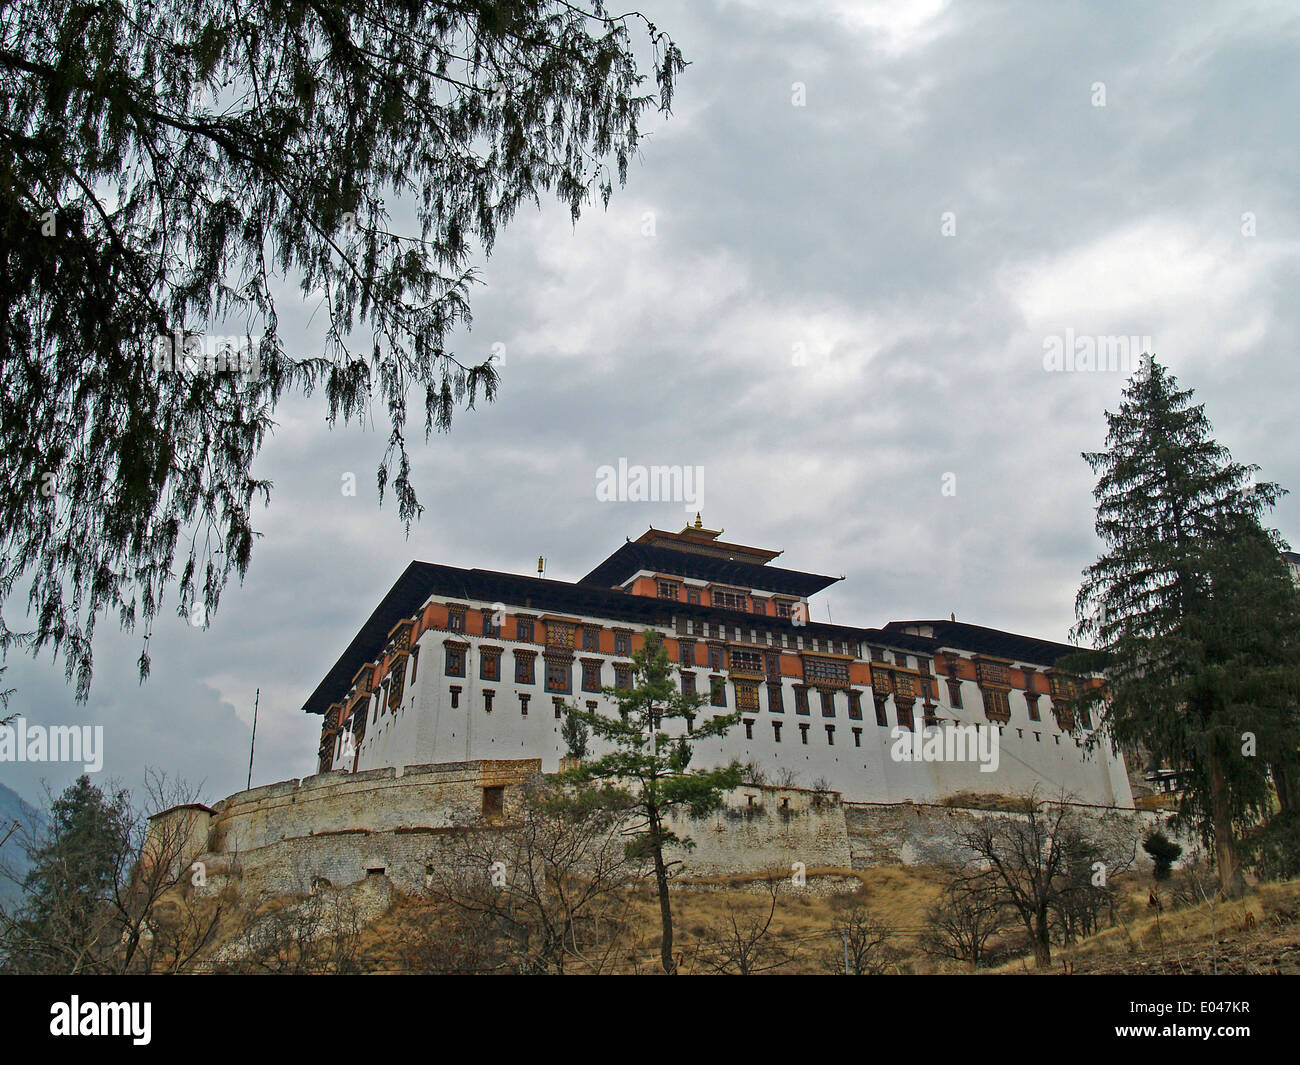 The Paro Dzong in Bhutan - Stock Image